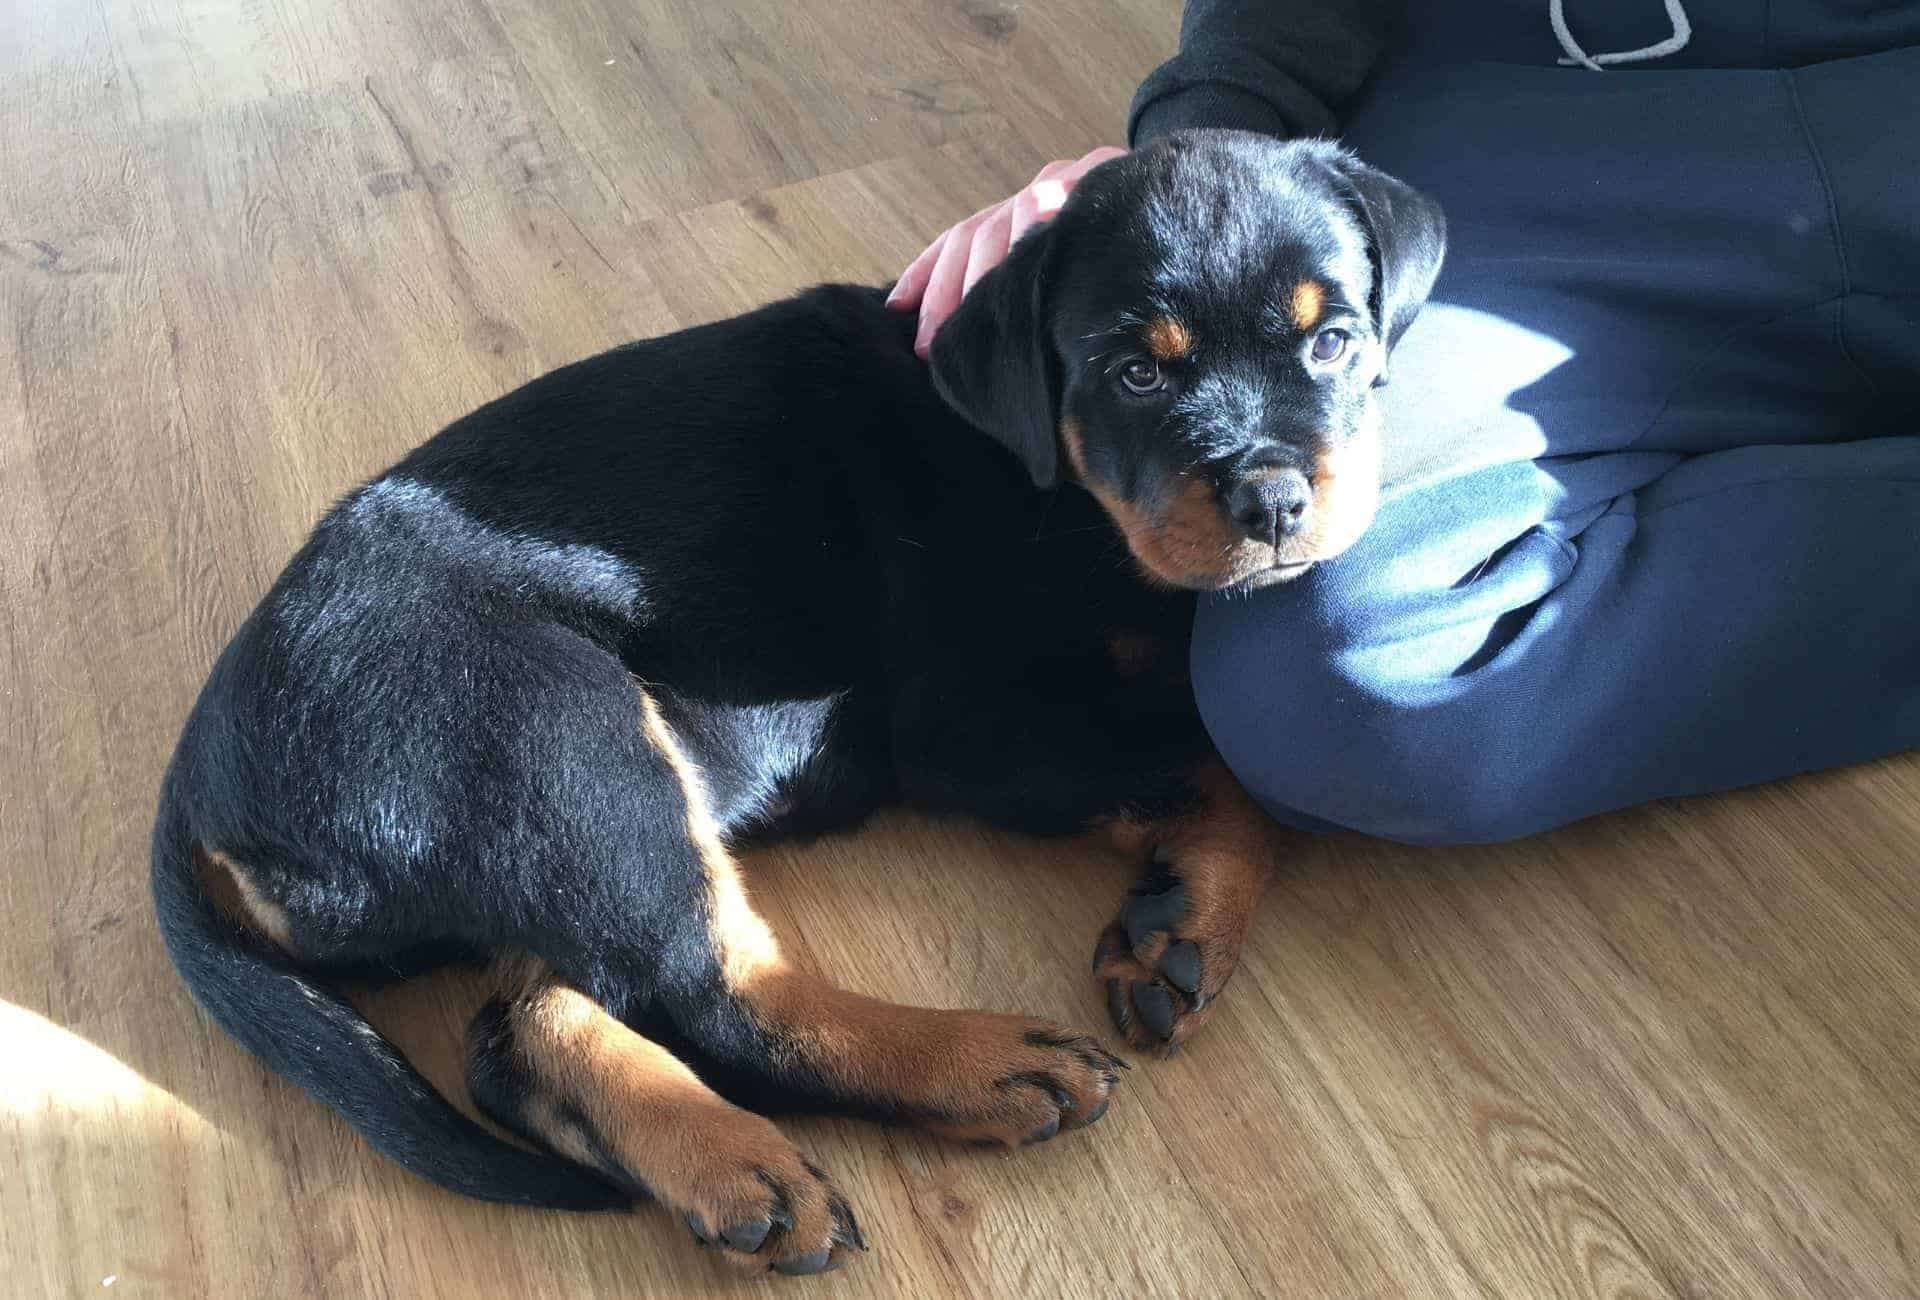 Rottweiler puppy at 8 weeks of age.